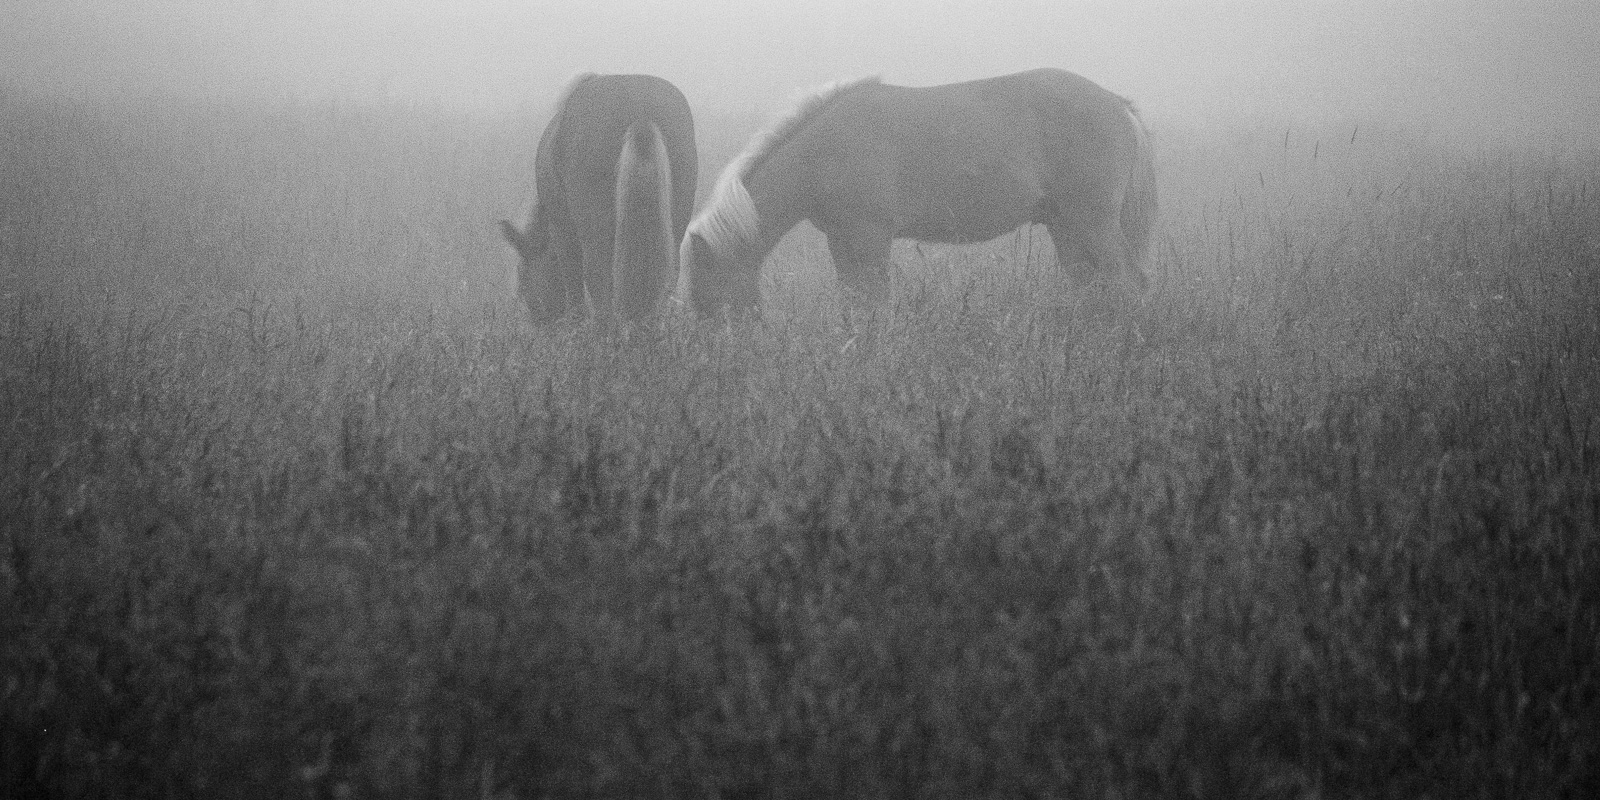 Story of Two Horses #5